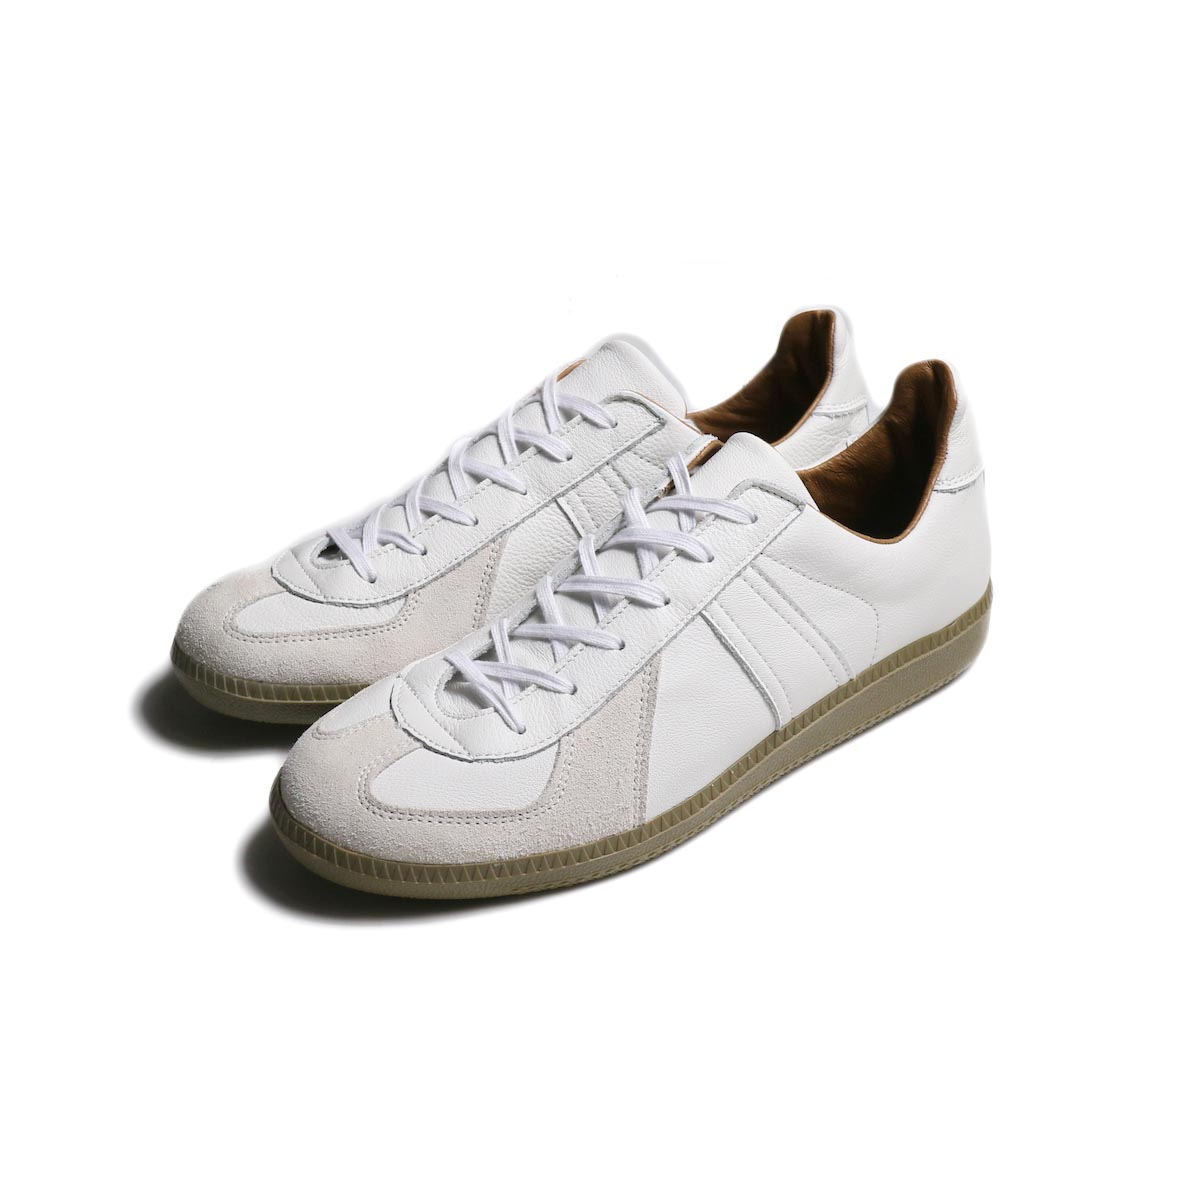 REPRODUCTION OF FOUND / GERMAN MILITARY TRAINER (White)